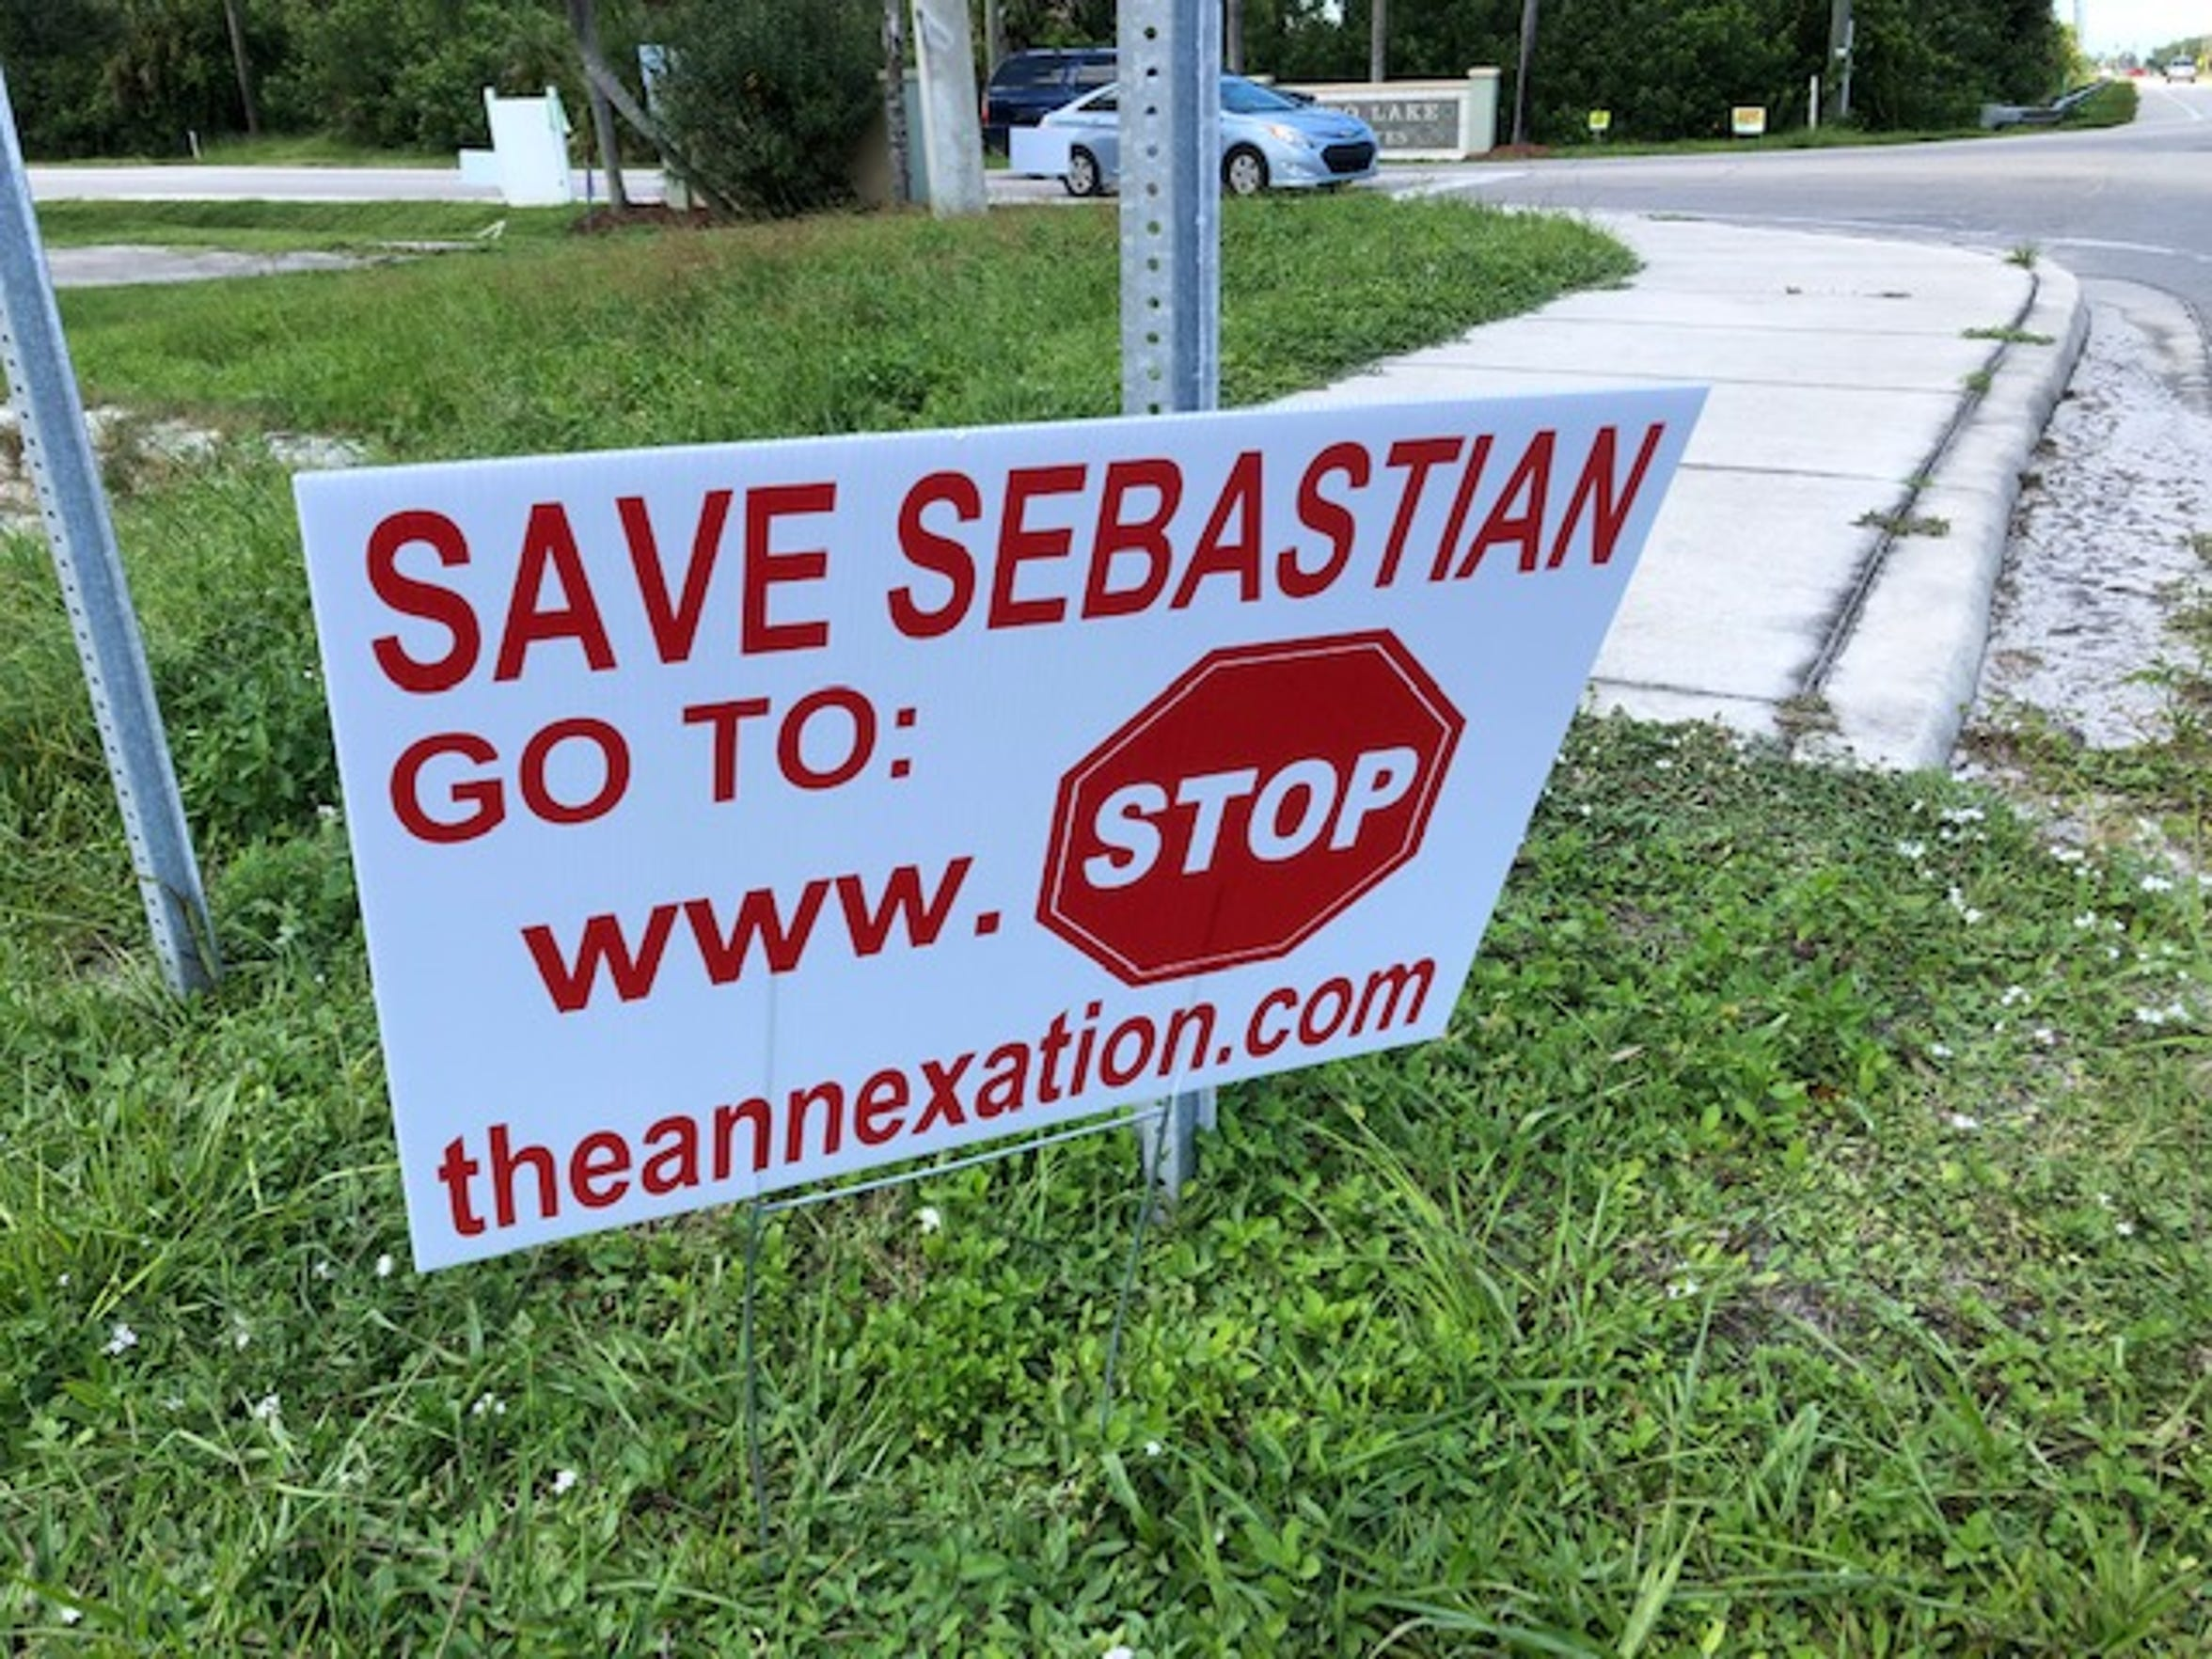 Opposition continues to grow to the proposed annexation of 1,118 acres into Sebastian. These signs are along County Road 510.